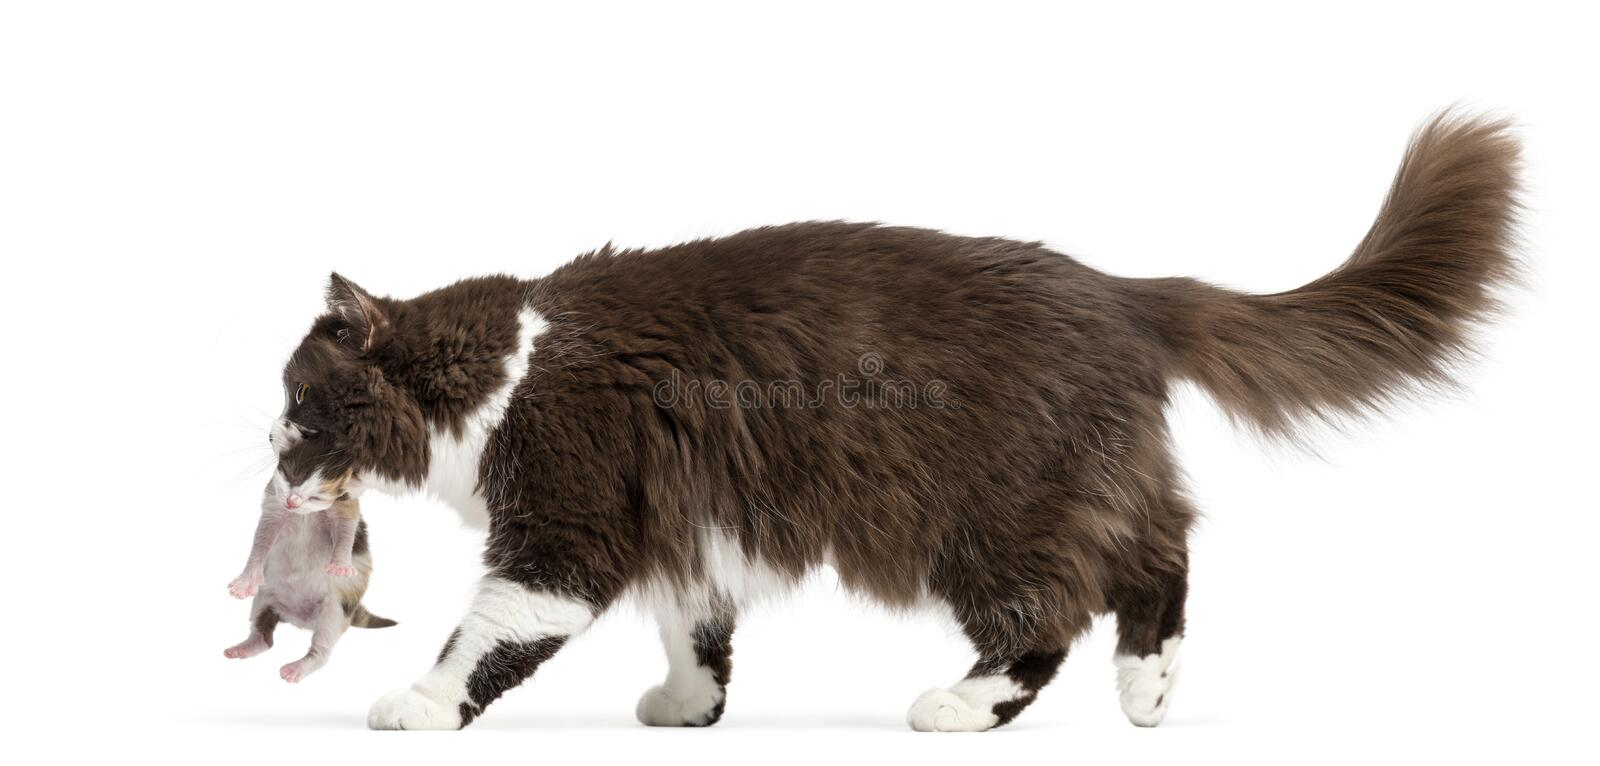 Side view of a British Longhair walking, carrying kitten